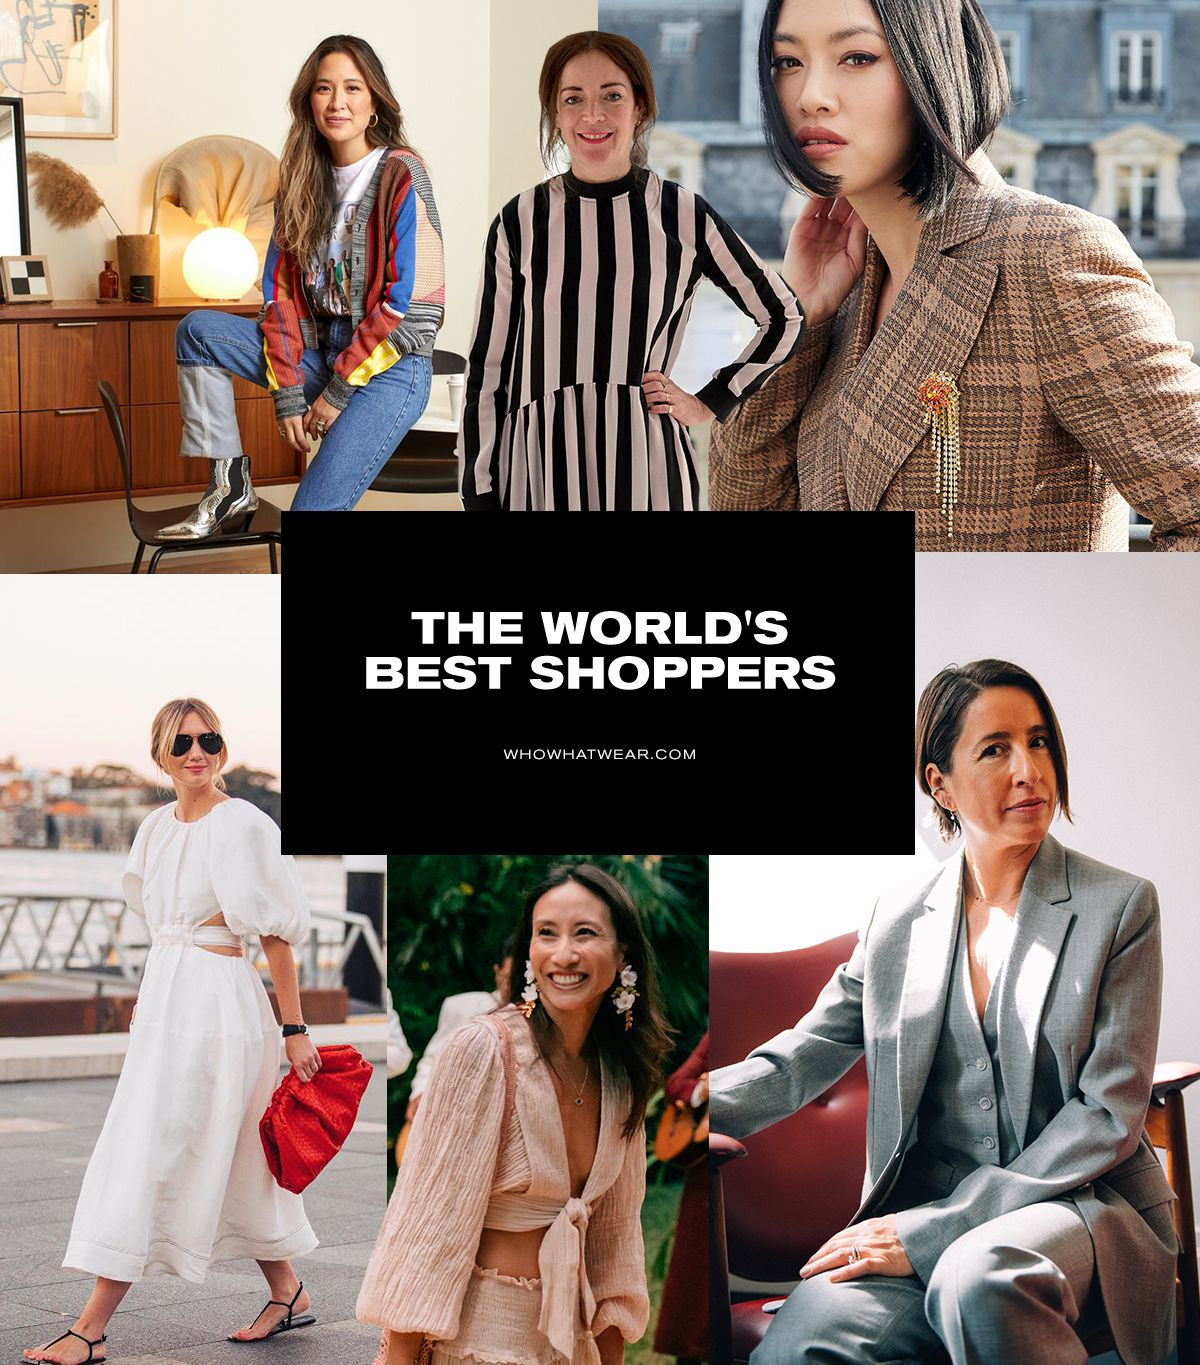 The World's Best Shoppers Share the Shoes We Should Buy for